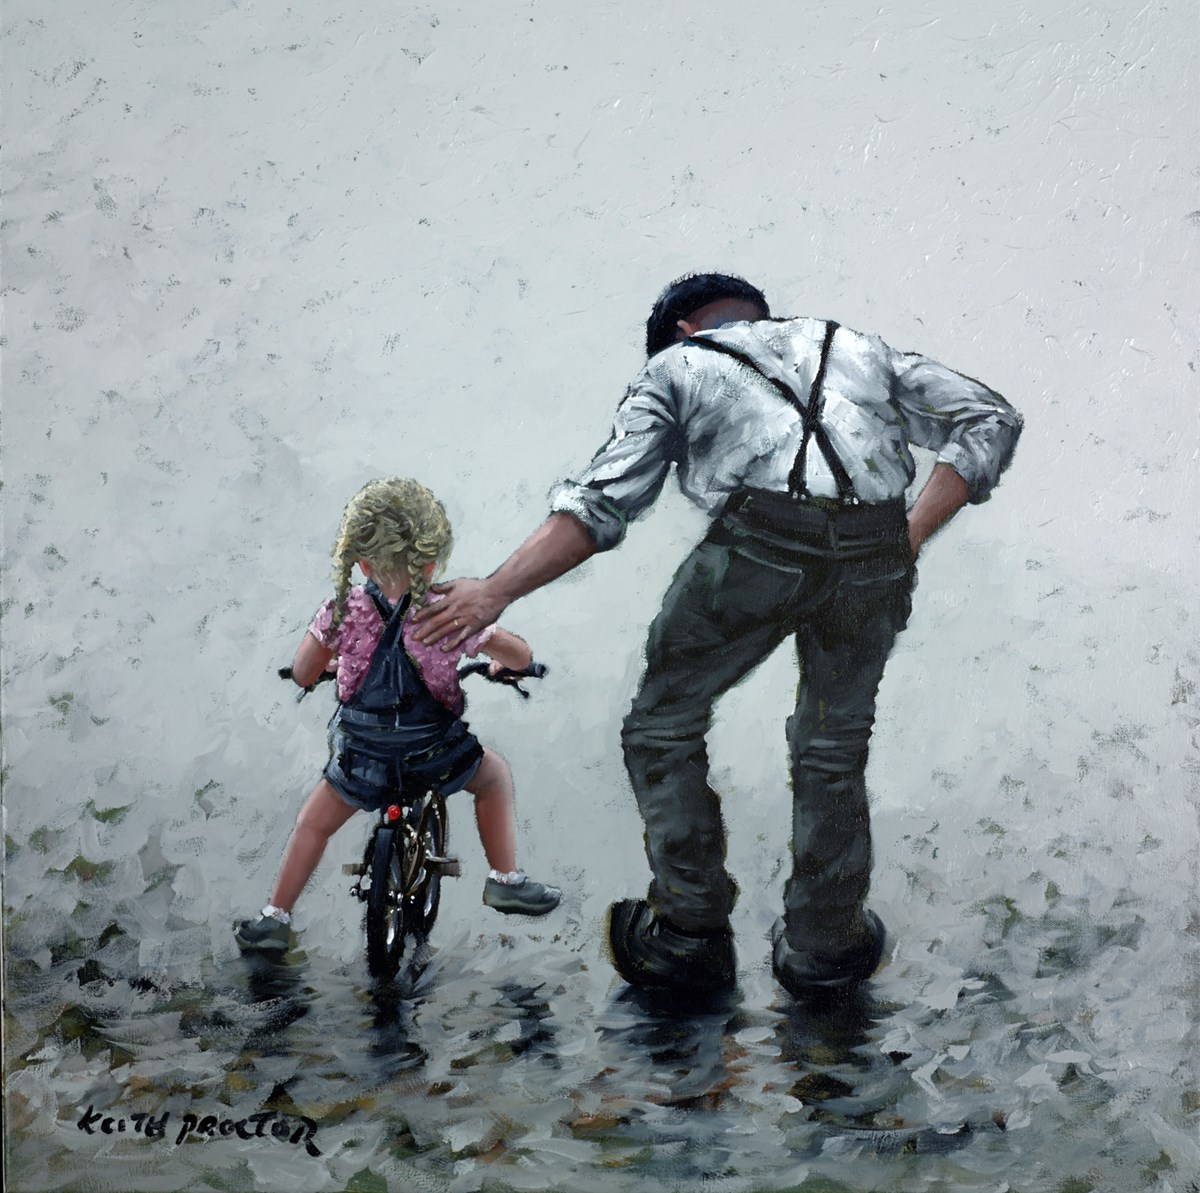 Memories are Made of This  by keith proctor -  sized 28x28 inches. Available from Whitewall Galleries